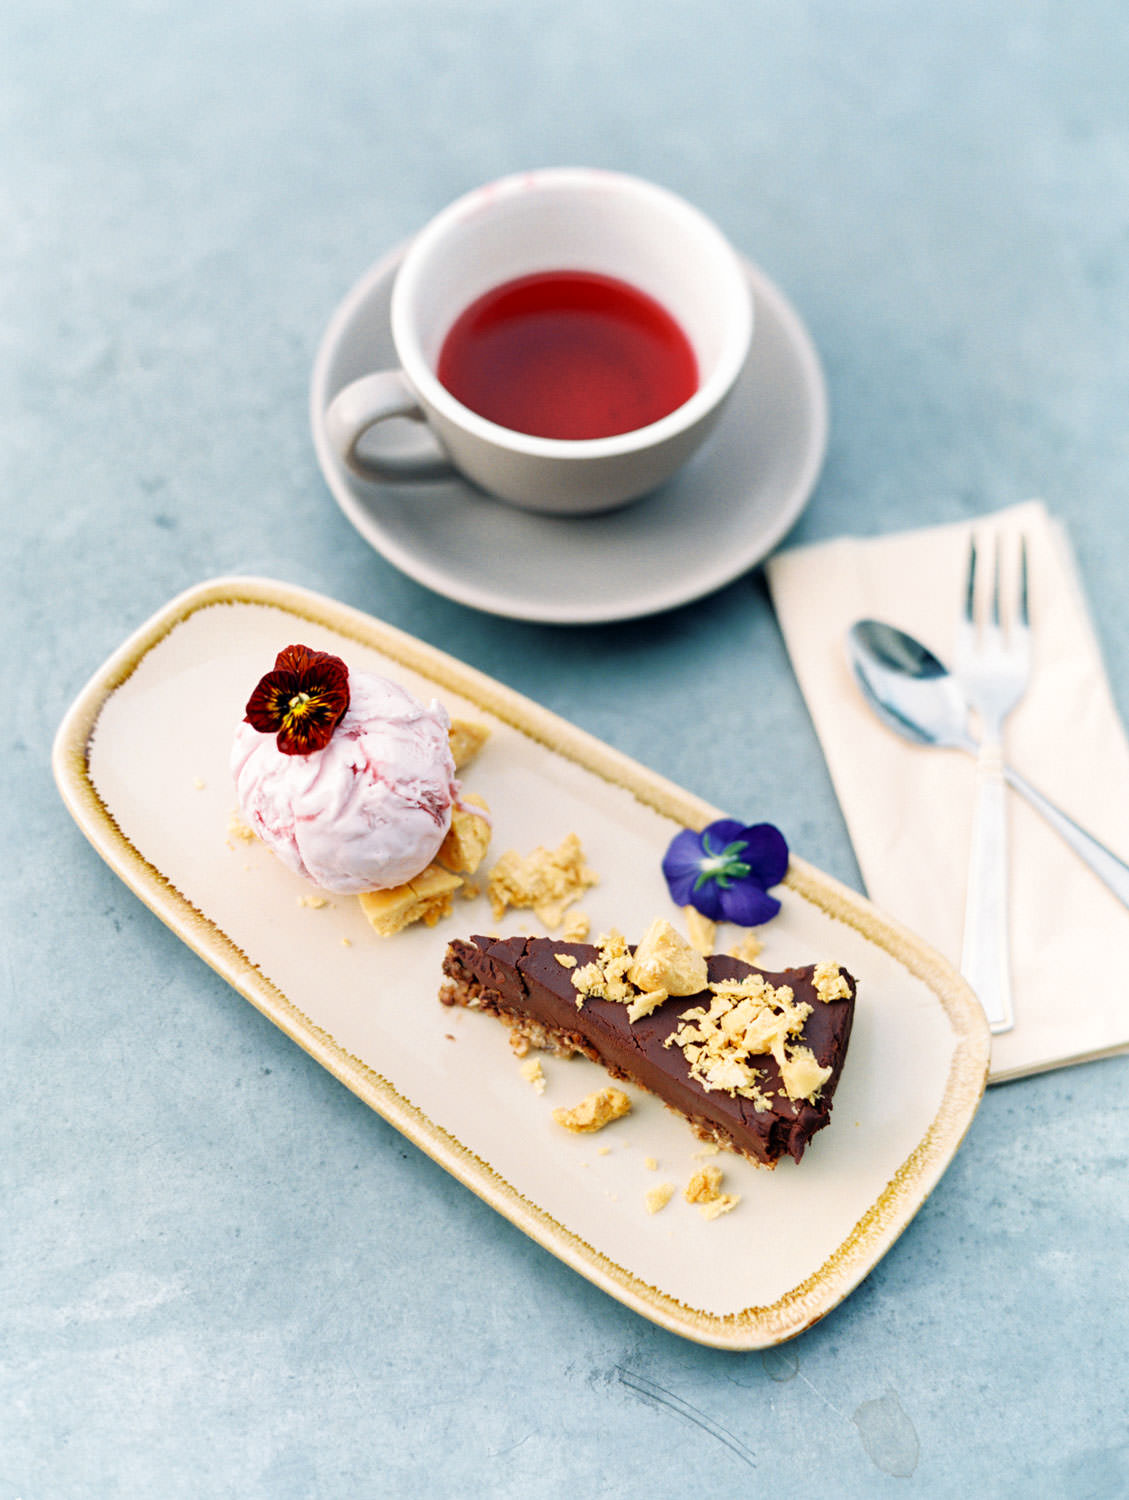 Chocolate torte – Served with honeycomb and ice cream from The Green Rocket in Bath England, Cavin Elizabeth Photography